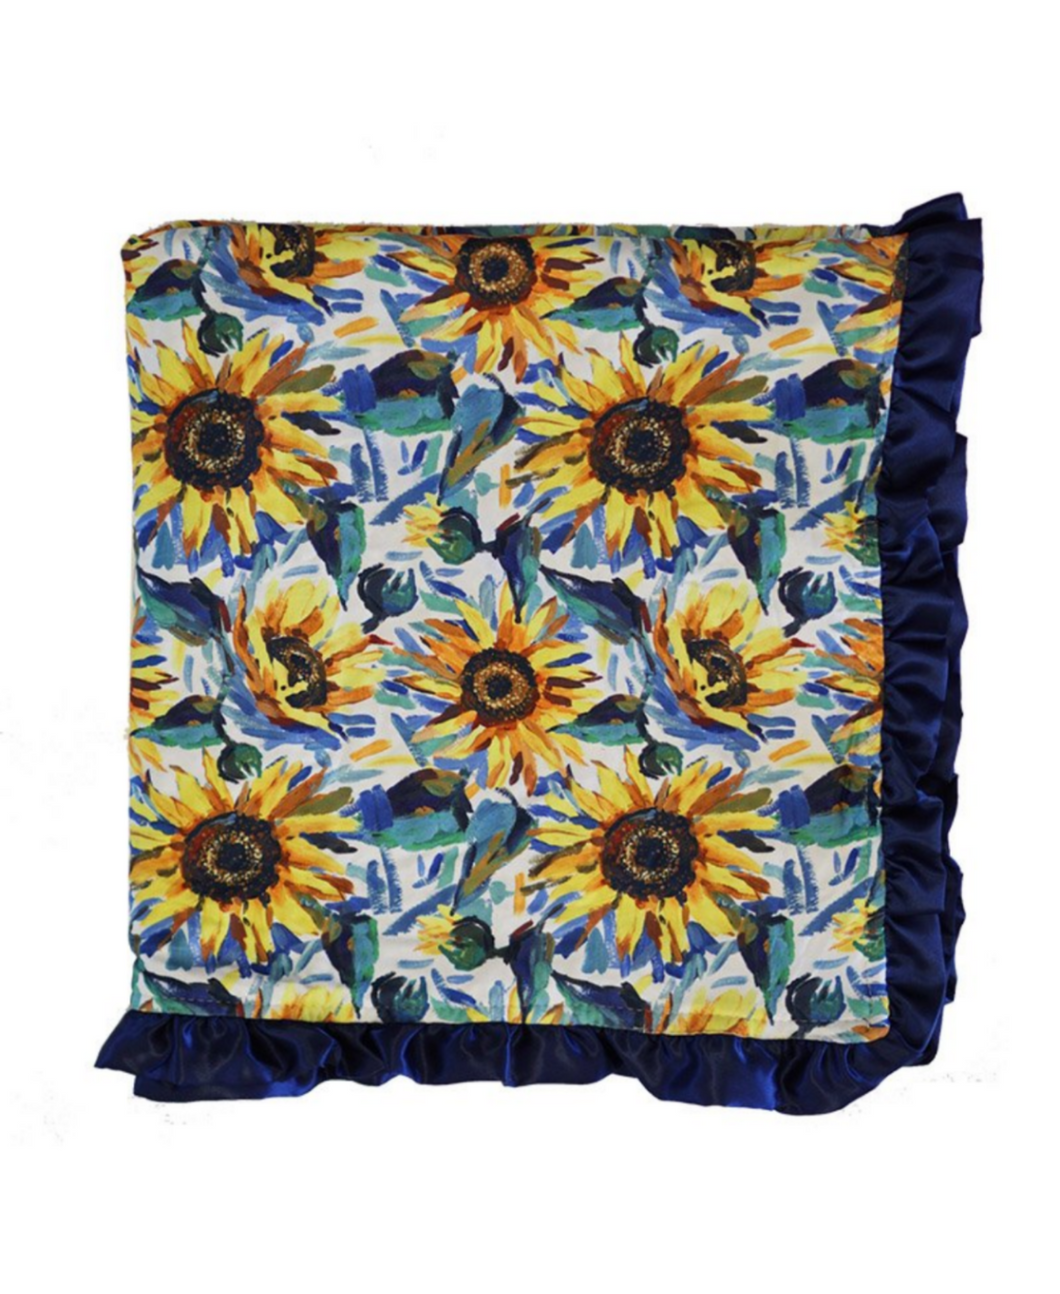 Sunflower Navy Ruffle Minky Baby Blanket - ARIA KIDS